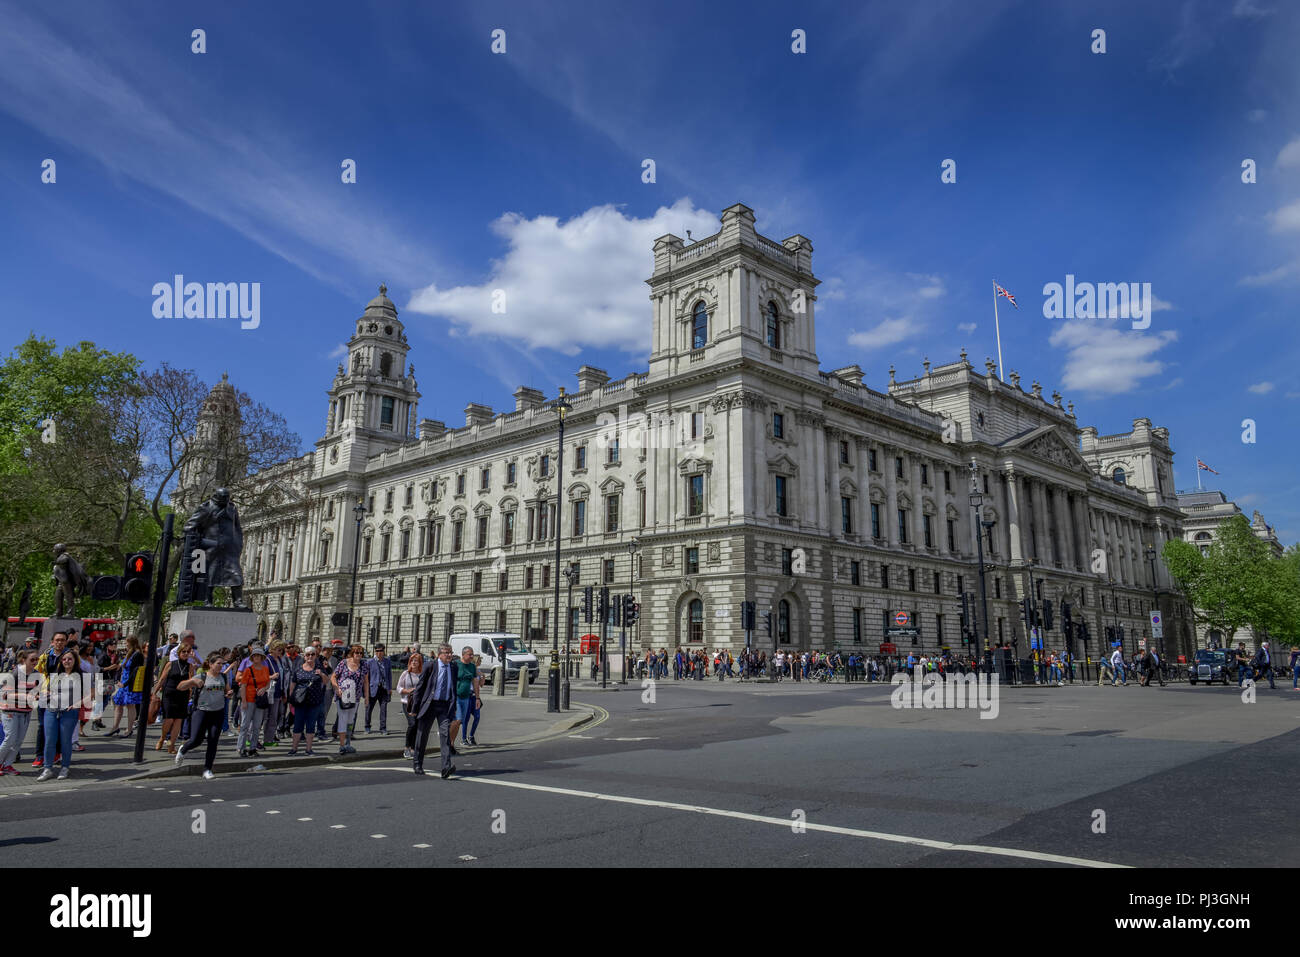 HM Treasury, Westminster, London, England, Grossbritannien - Stock Image